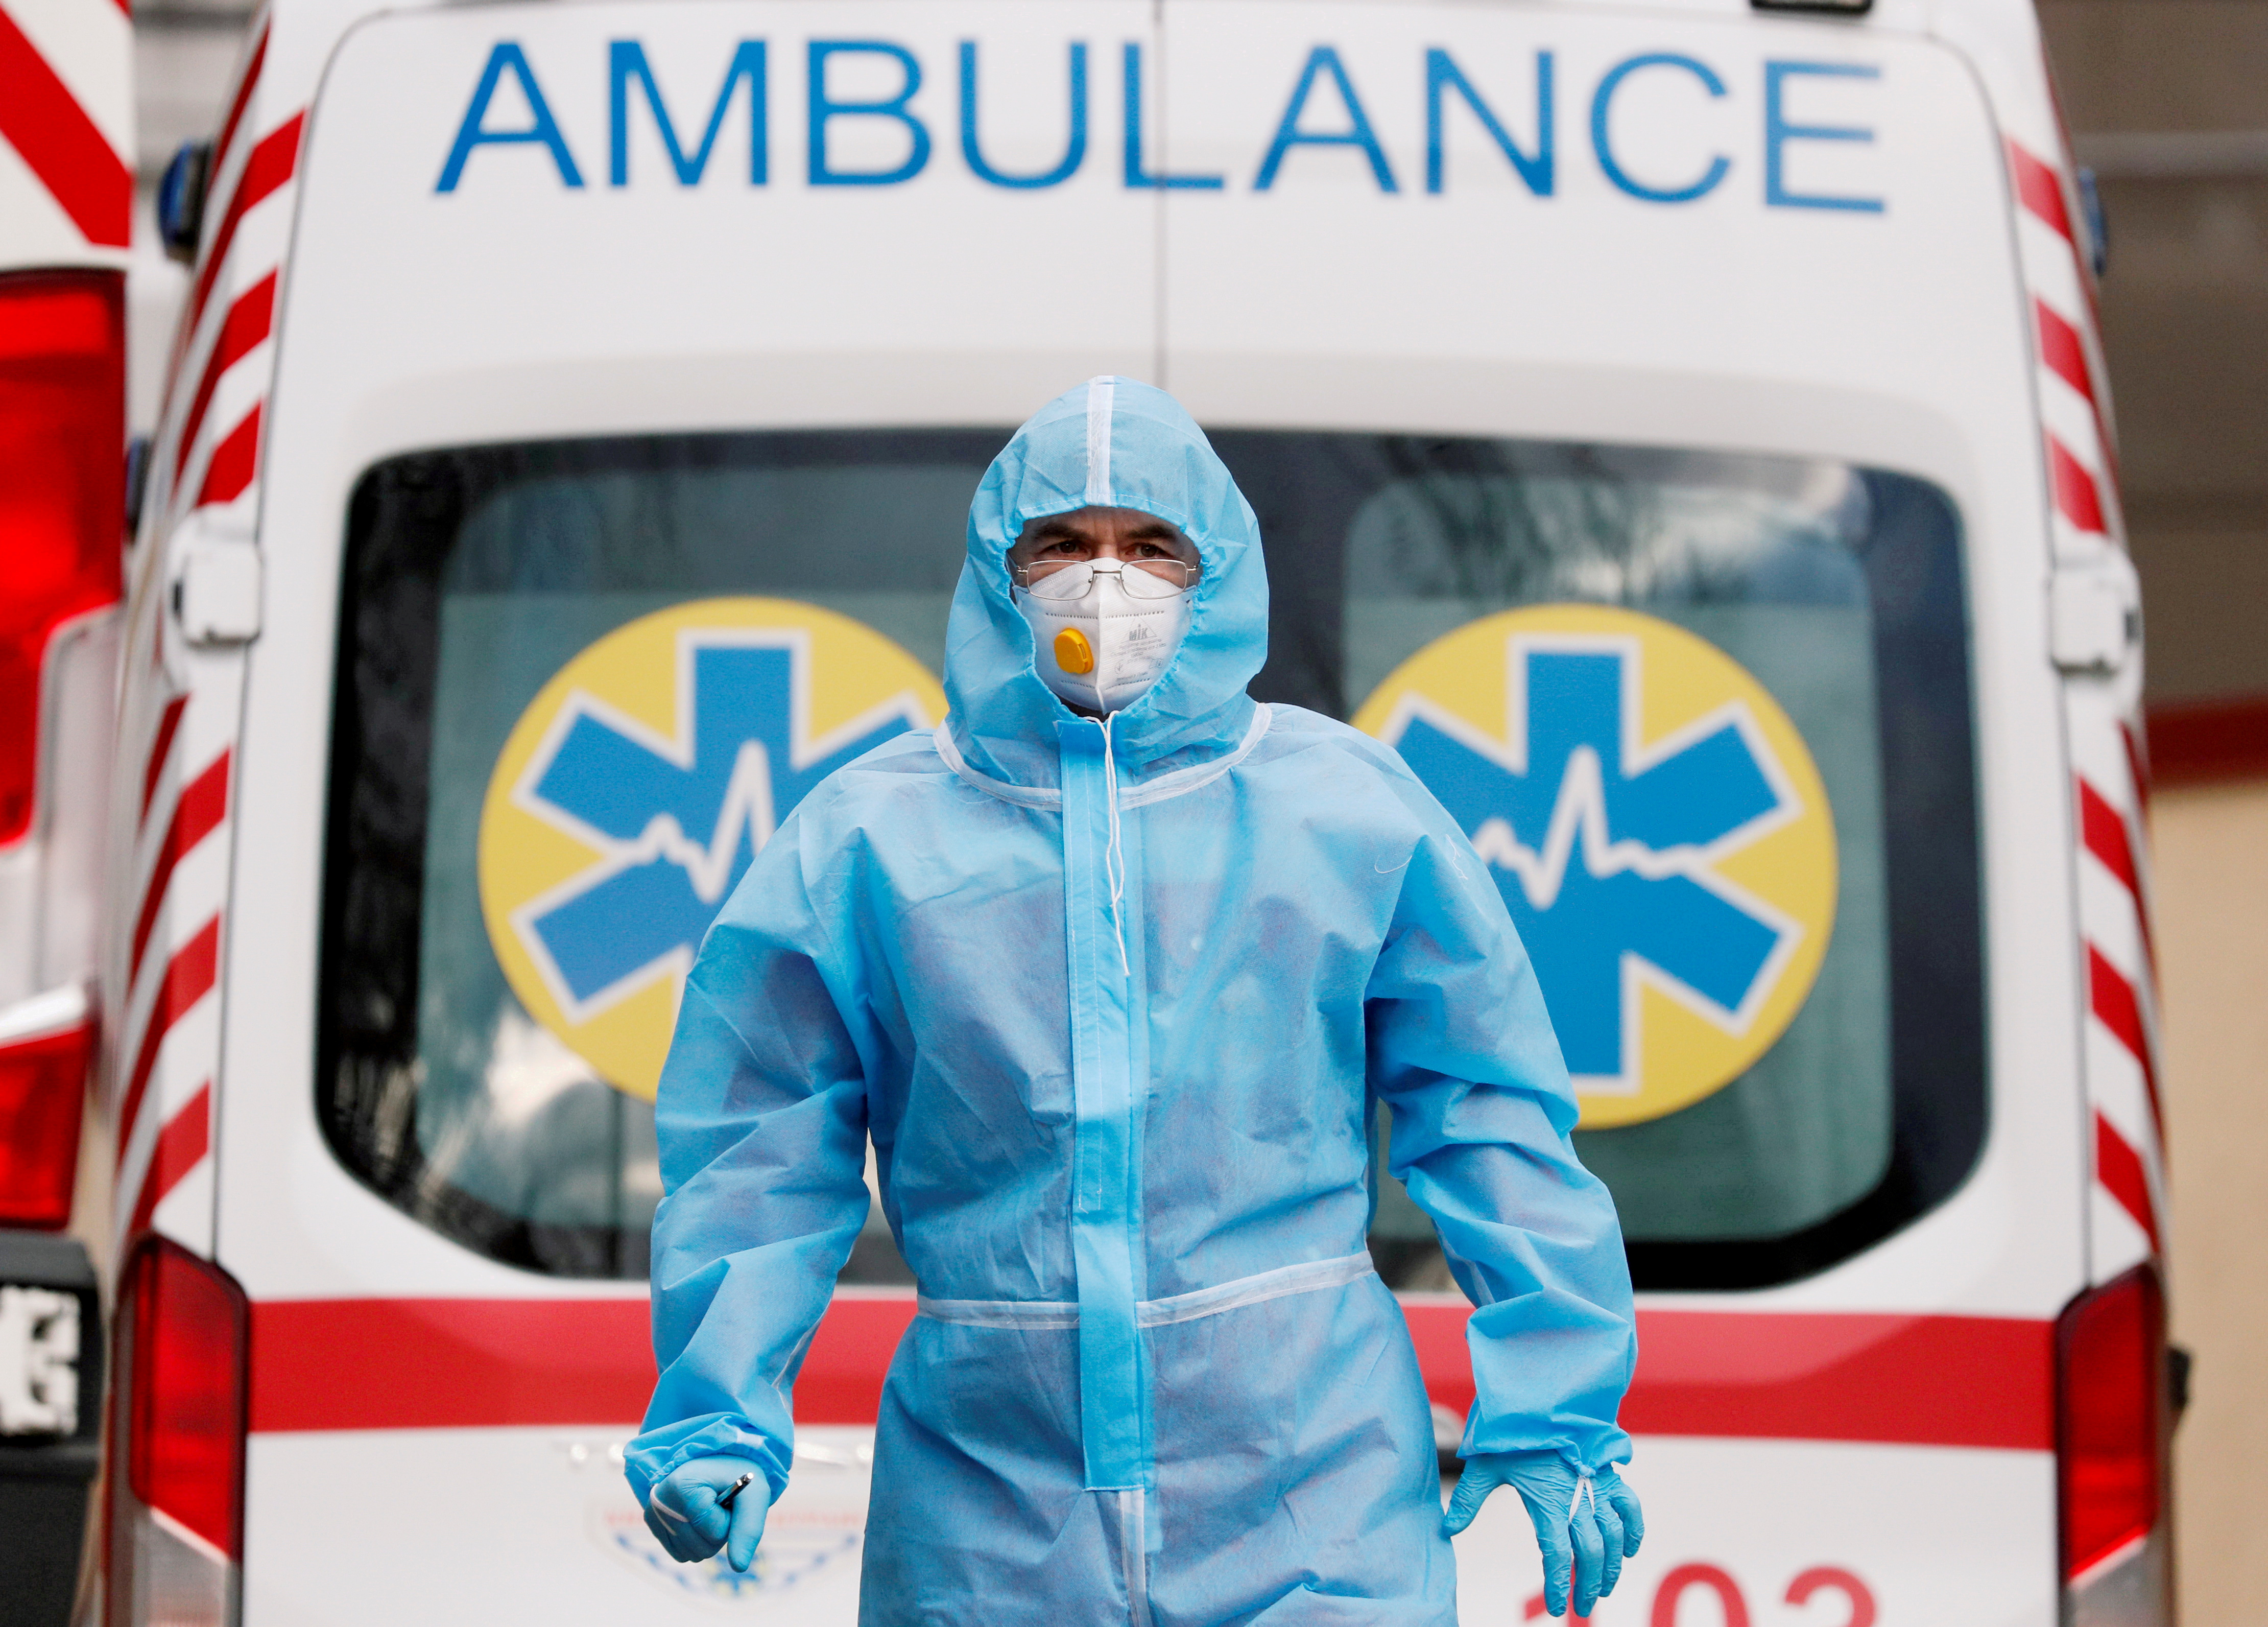 A medical worker wearing protective gear stands next to an ambulance outside a hospital for patients infected with COVID-19 in Kyiv, Ukraine, November 24, 2020.  REUTERS/Gleb Garanich